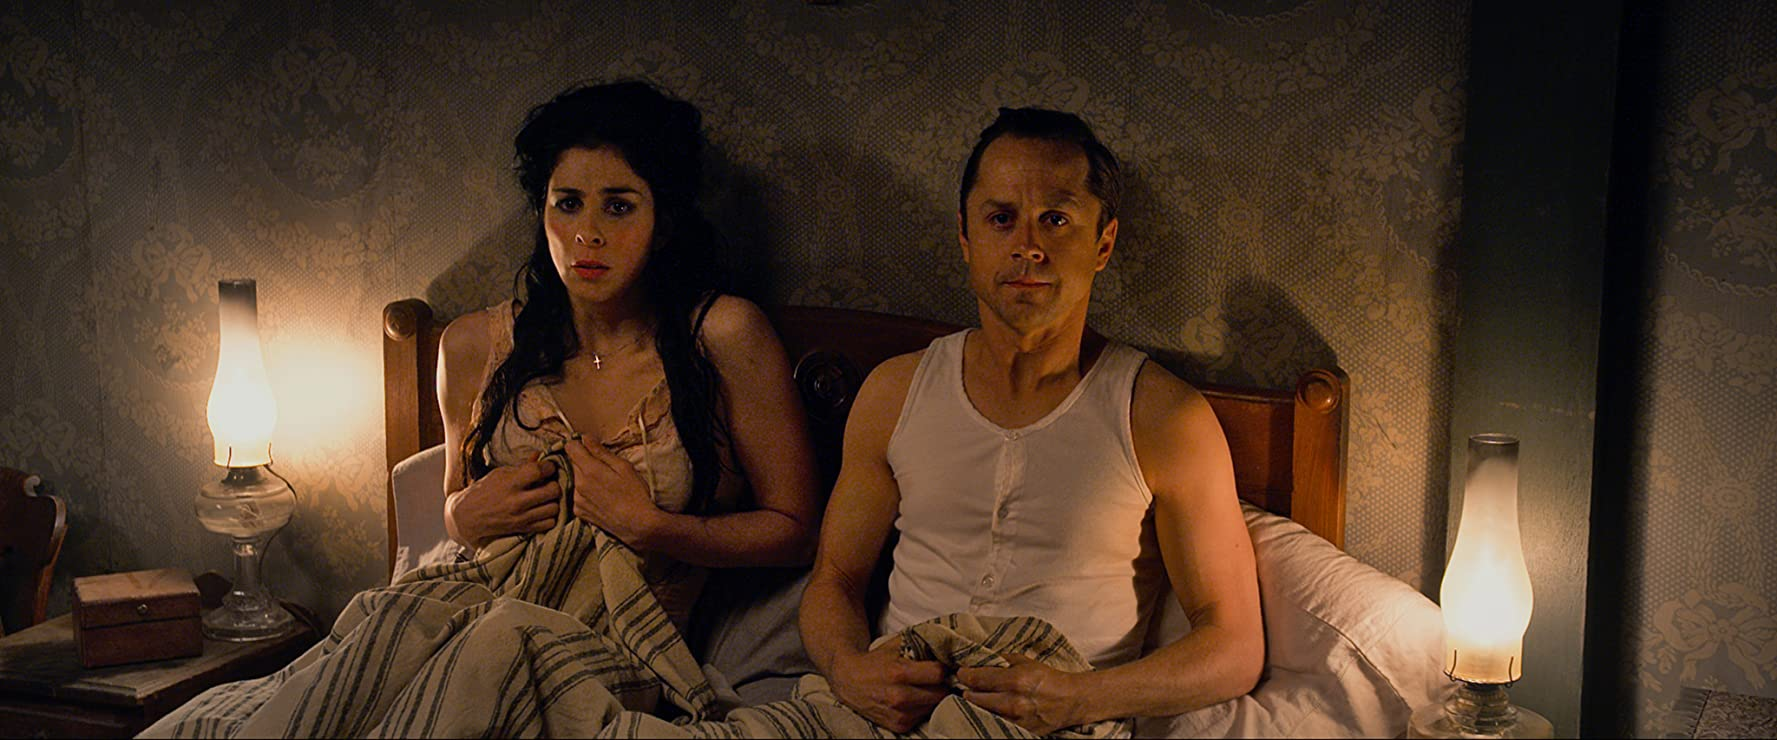 Giovanni Ribisi And Sarah Silverman In A Million Ways To Die In The West 2014